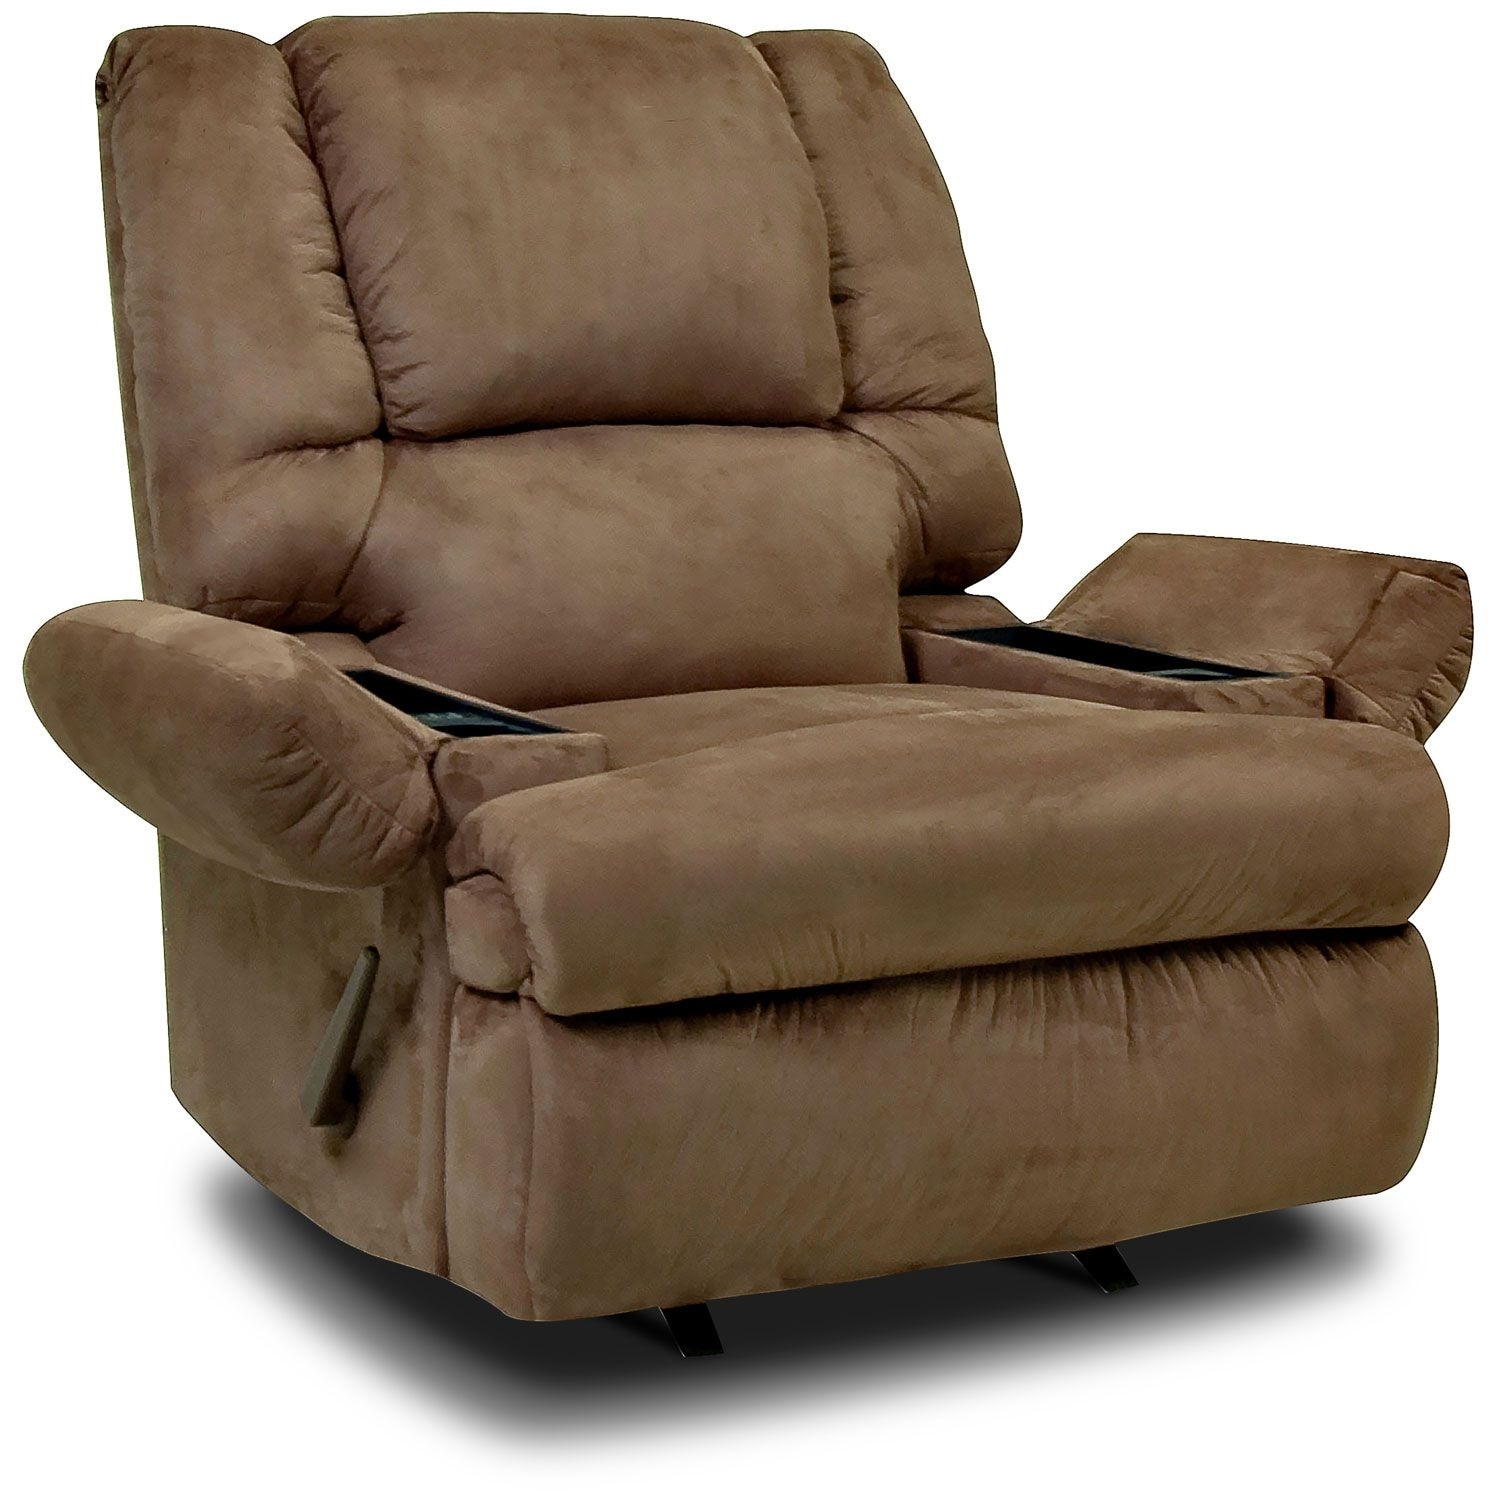 Living Room Furniture - Designed2B Recliner 5598 Padded Suede Rocker with Storage Arms - Mocha